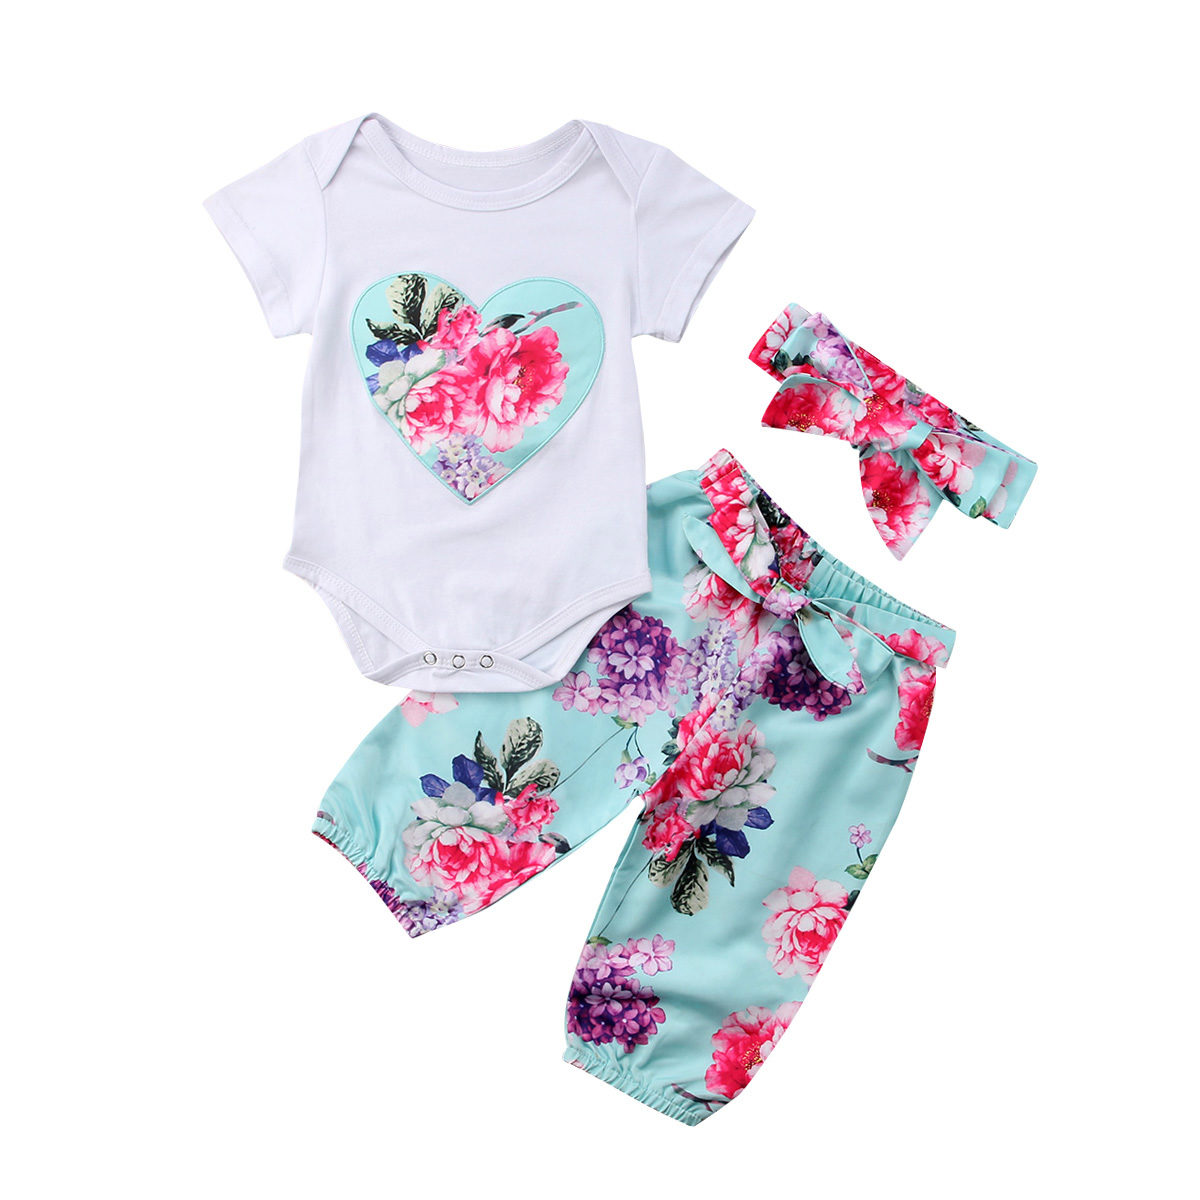 3Pcs Girls Romper Newborn Baby Girls White Blue Floral Cotton Tops Romper Pants Headband Outfits Clothes